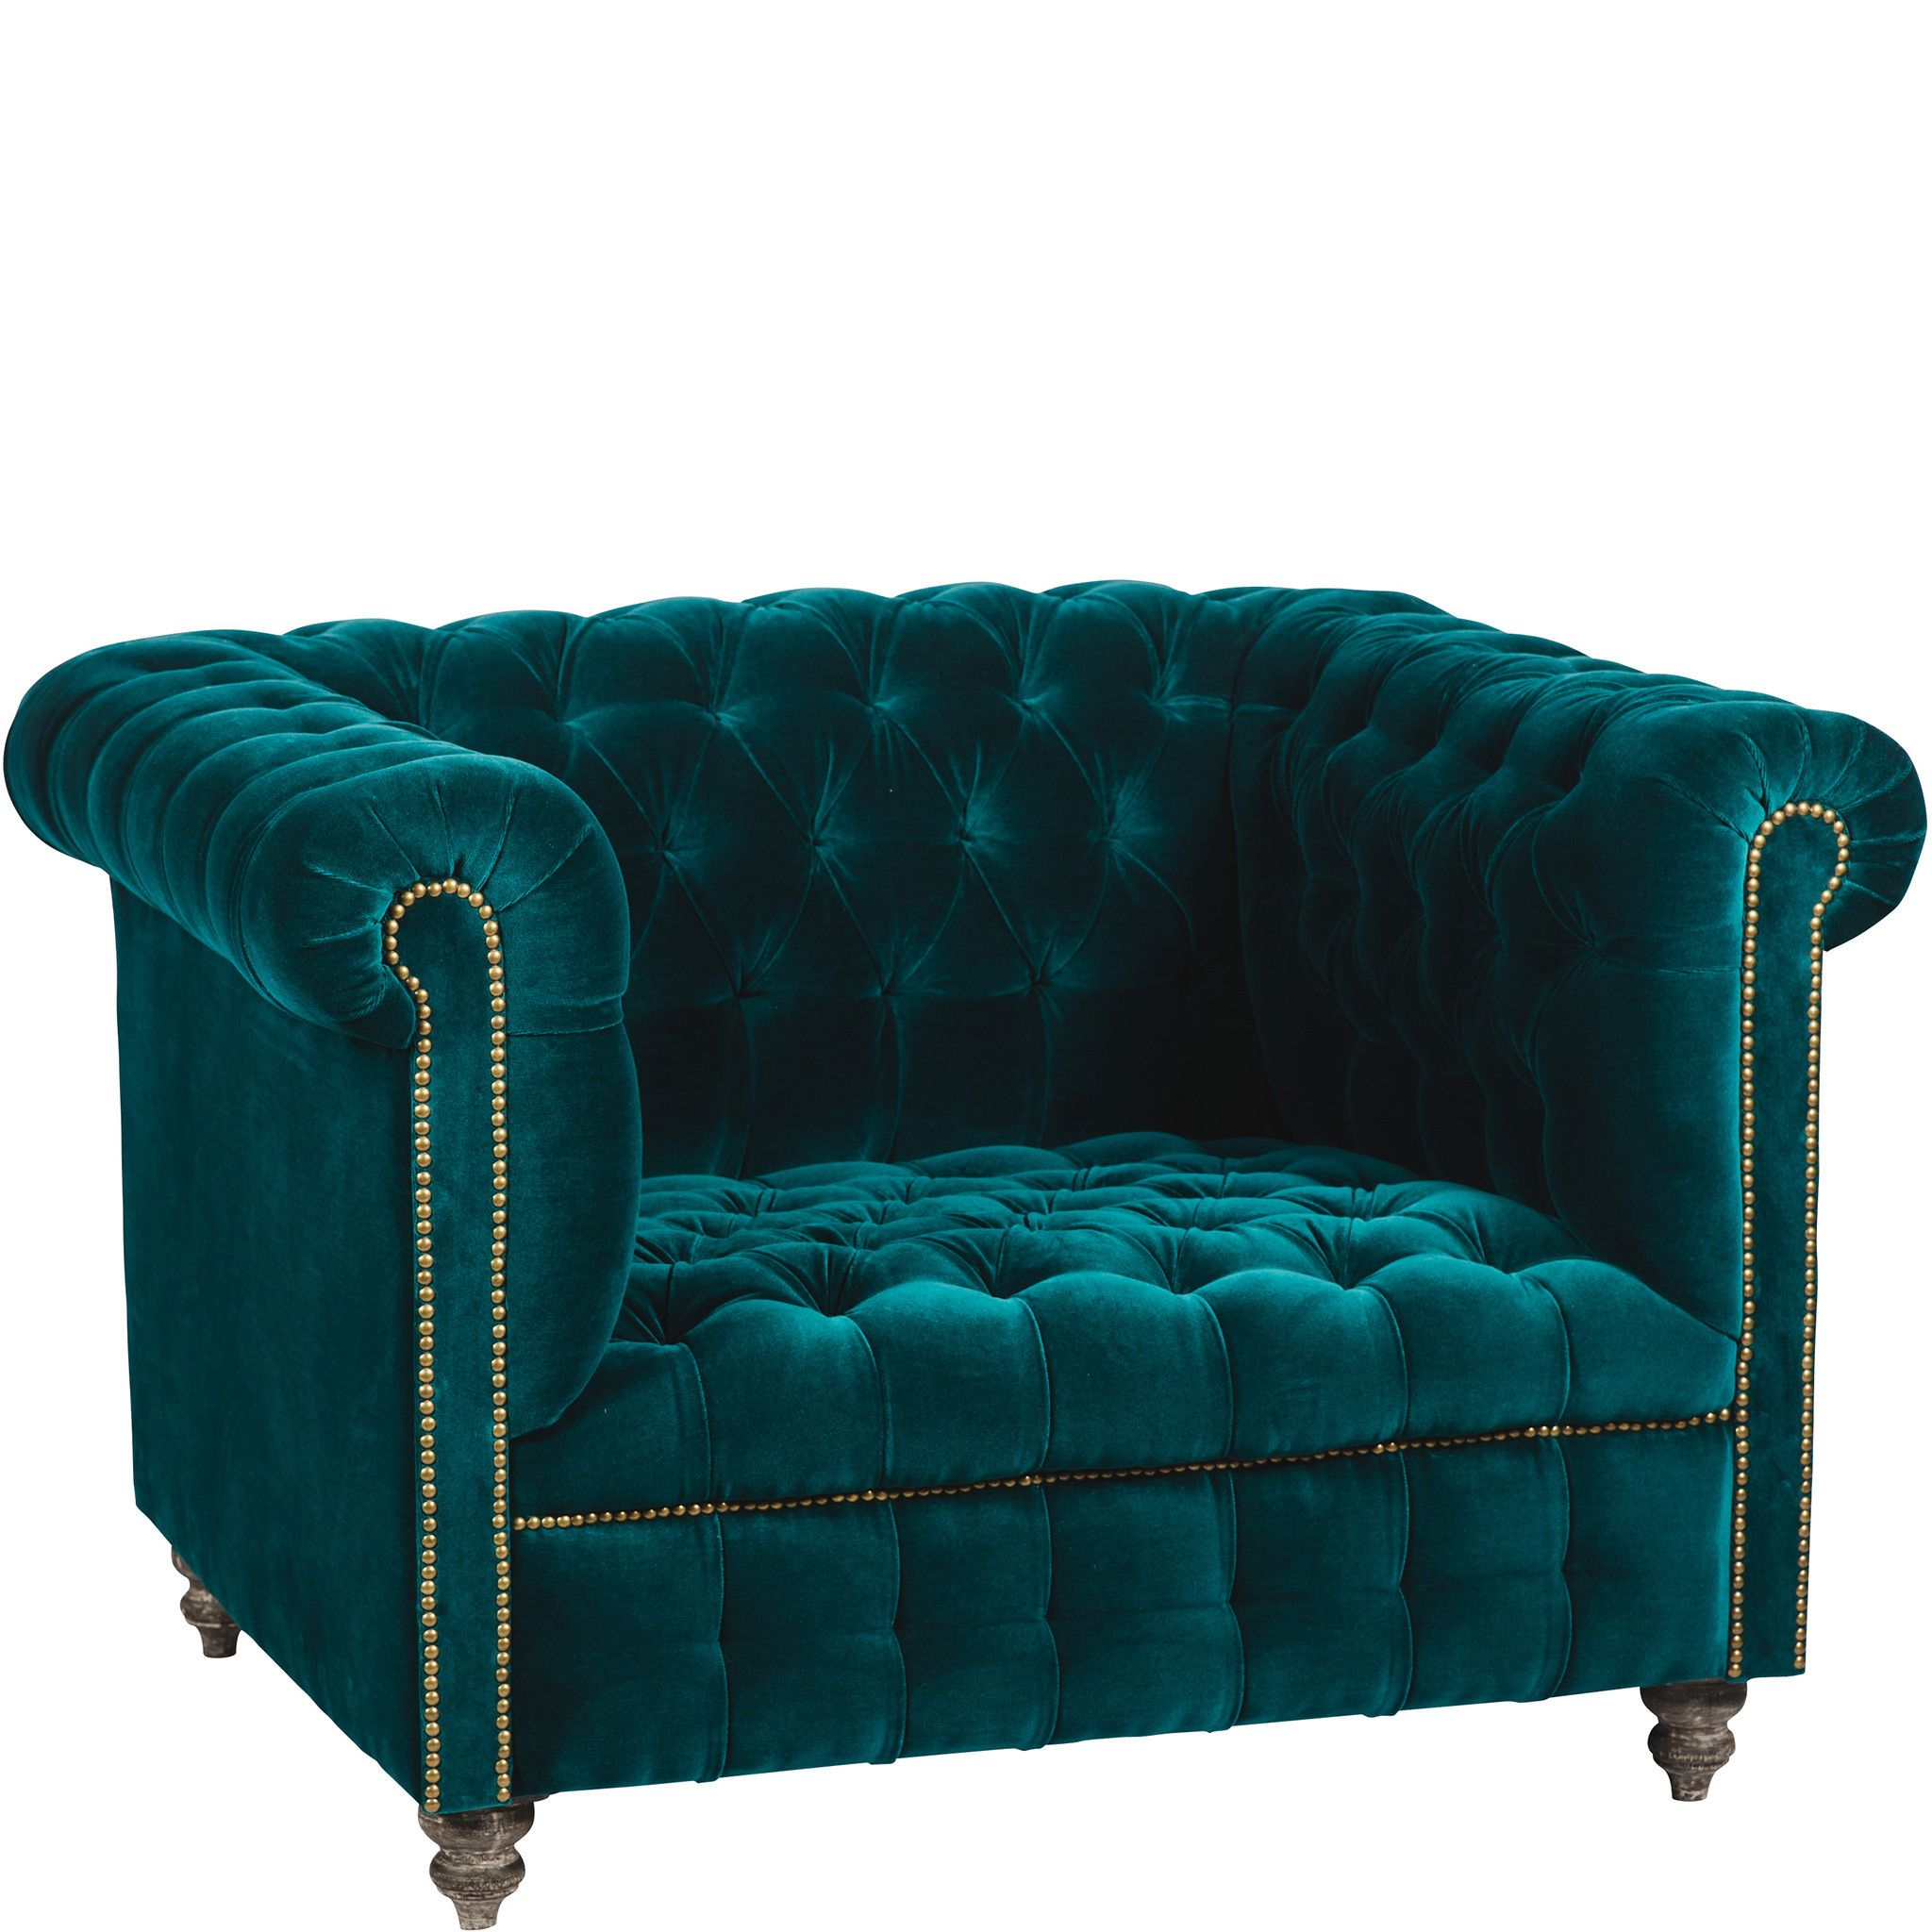 Aqua Teal Turquoiaw Velvet Accent Chair: Chesterfield Velvet Armchair - Teal